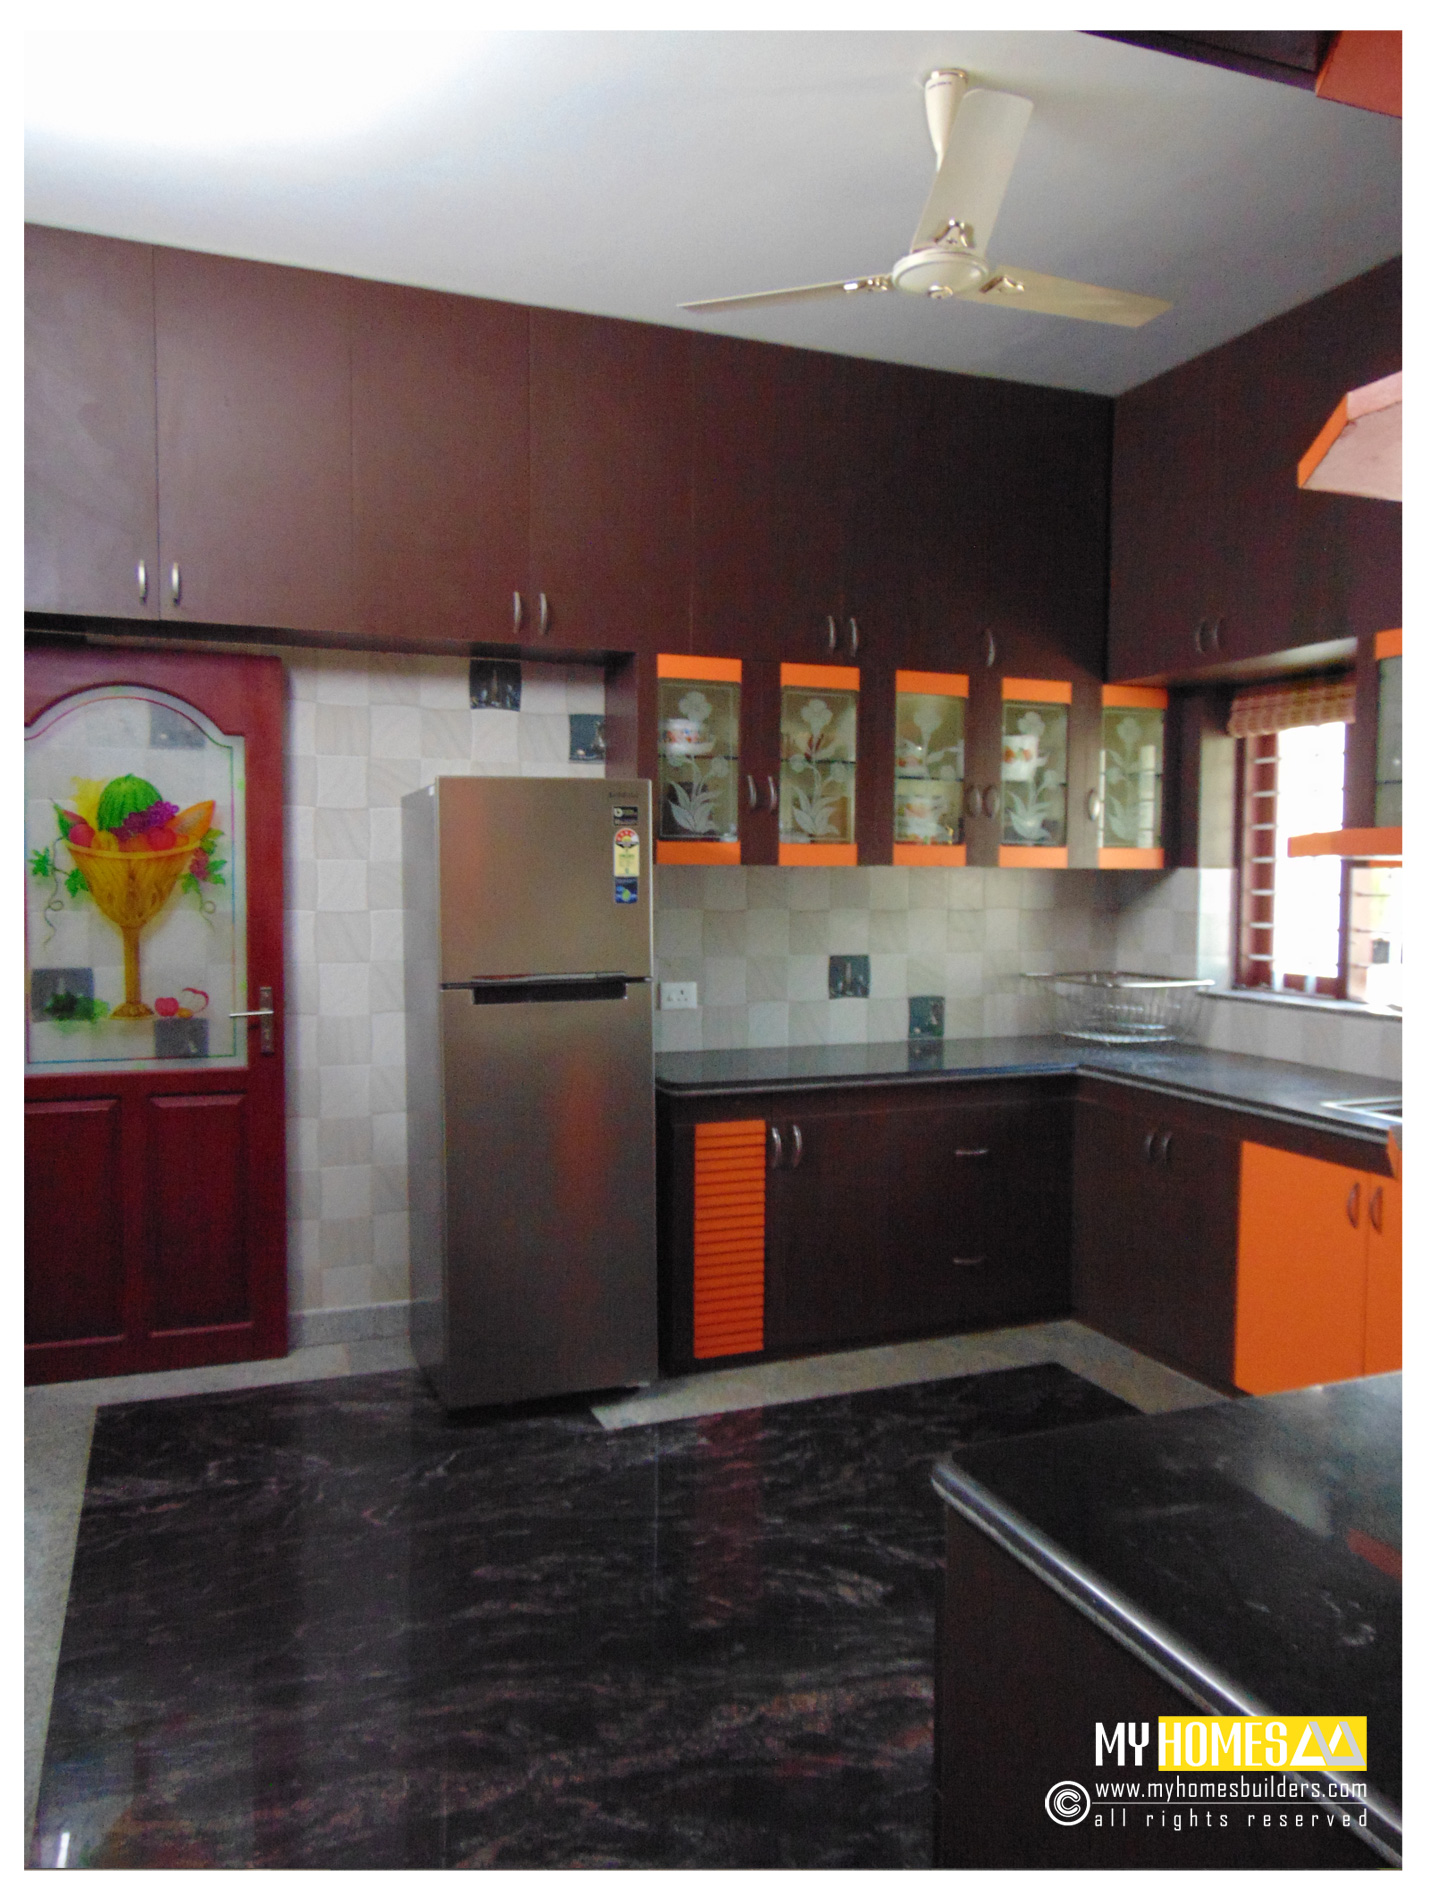 Kerala kitchen designs idea in modular style for house in for Dining room ideas kerala